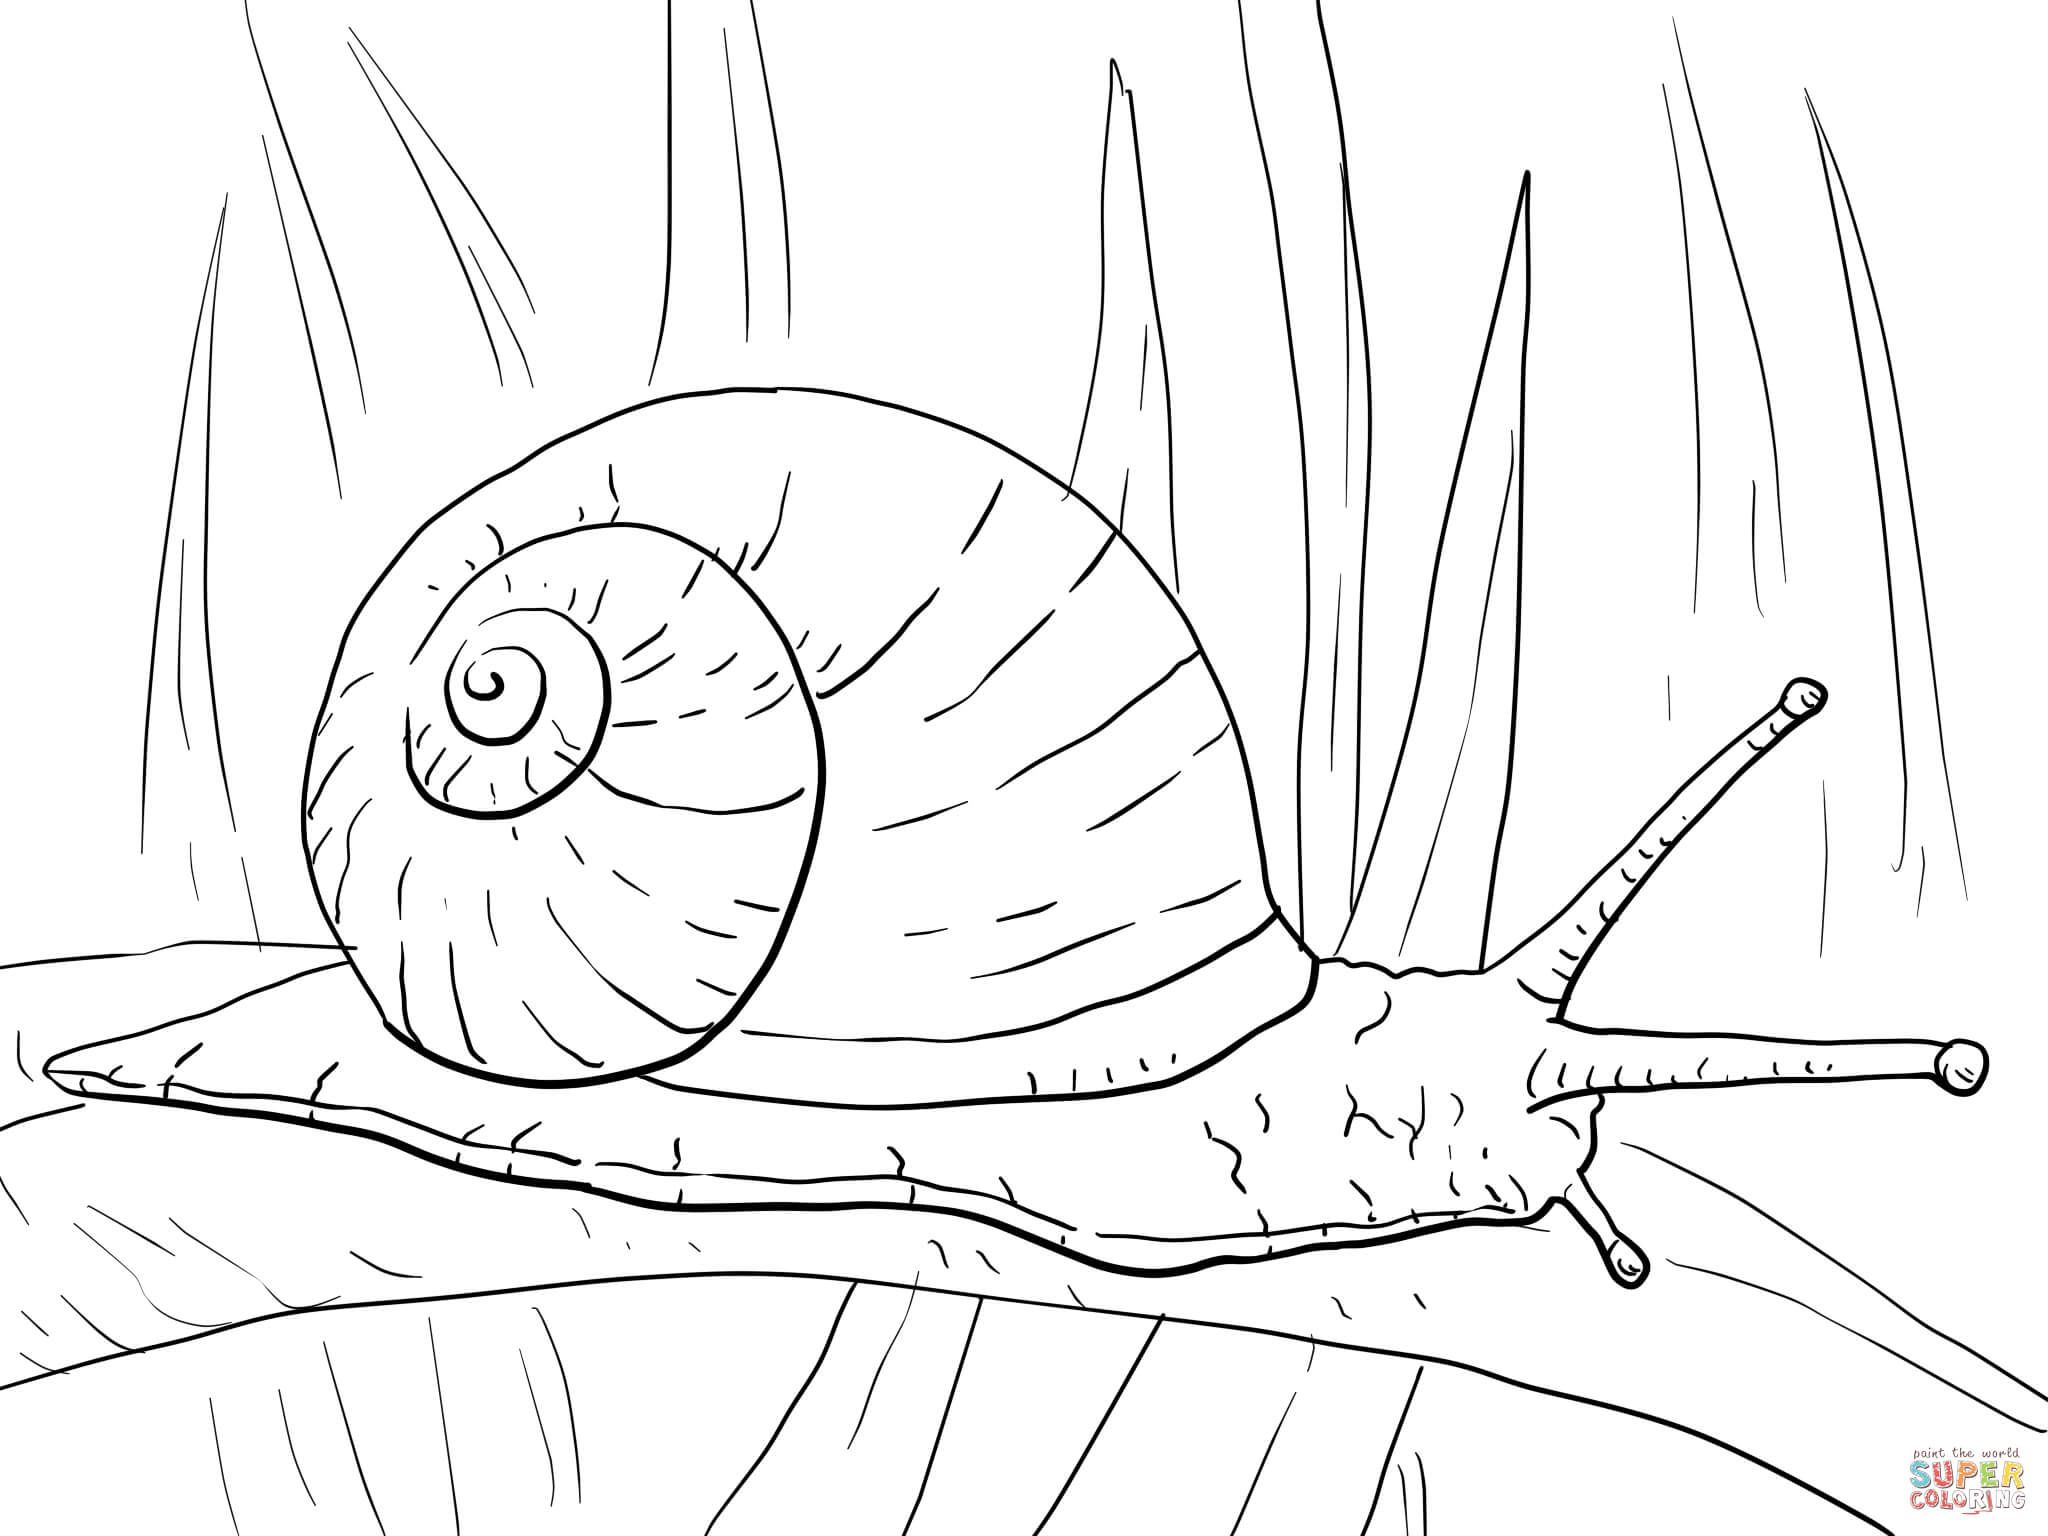 Garden Snail Super Coloring Super Coloring Pages Free